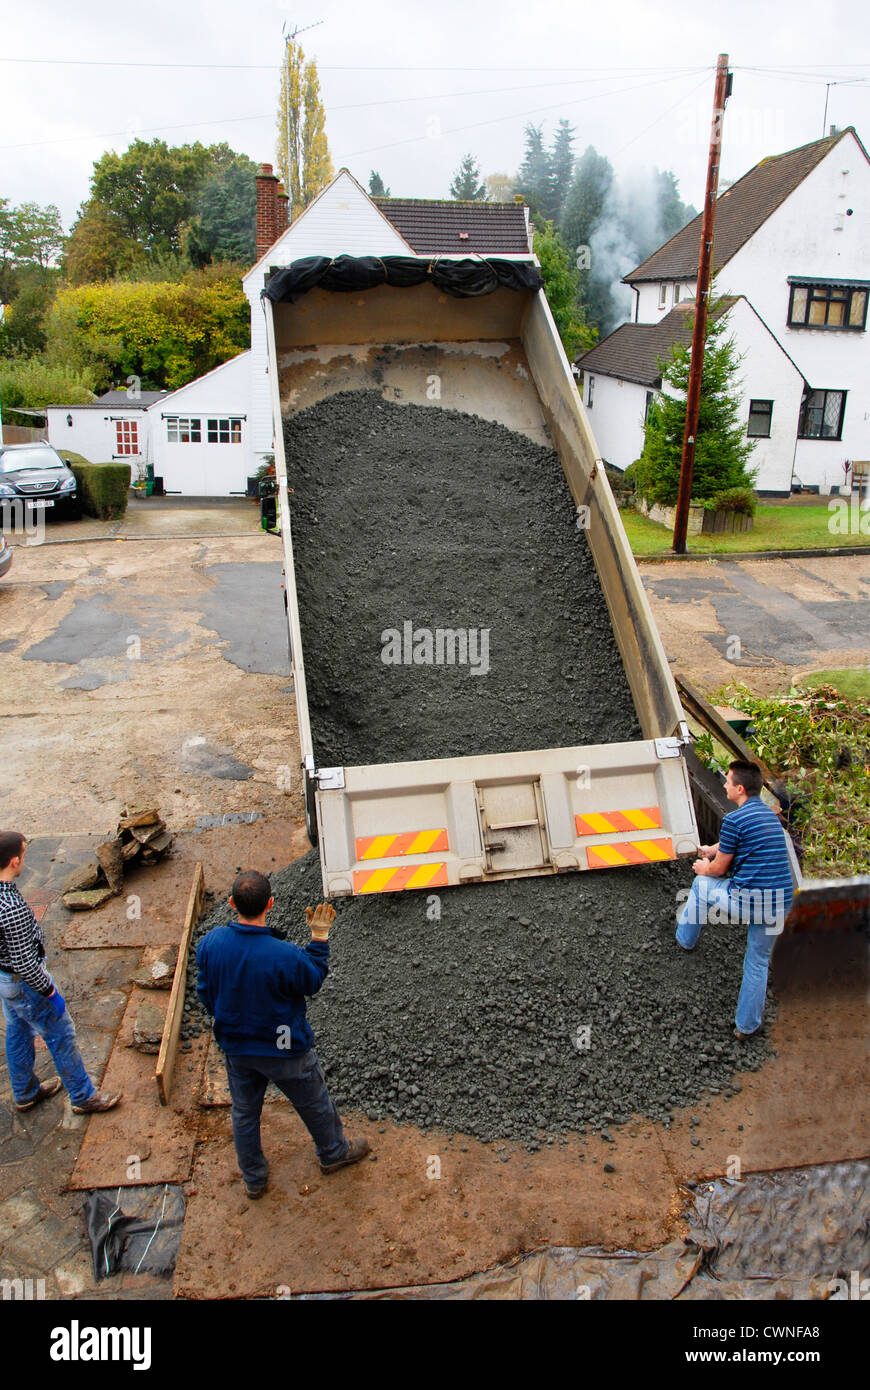 Tipper lorry unloading aggregate - Stock Image